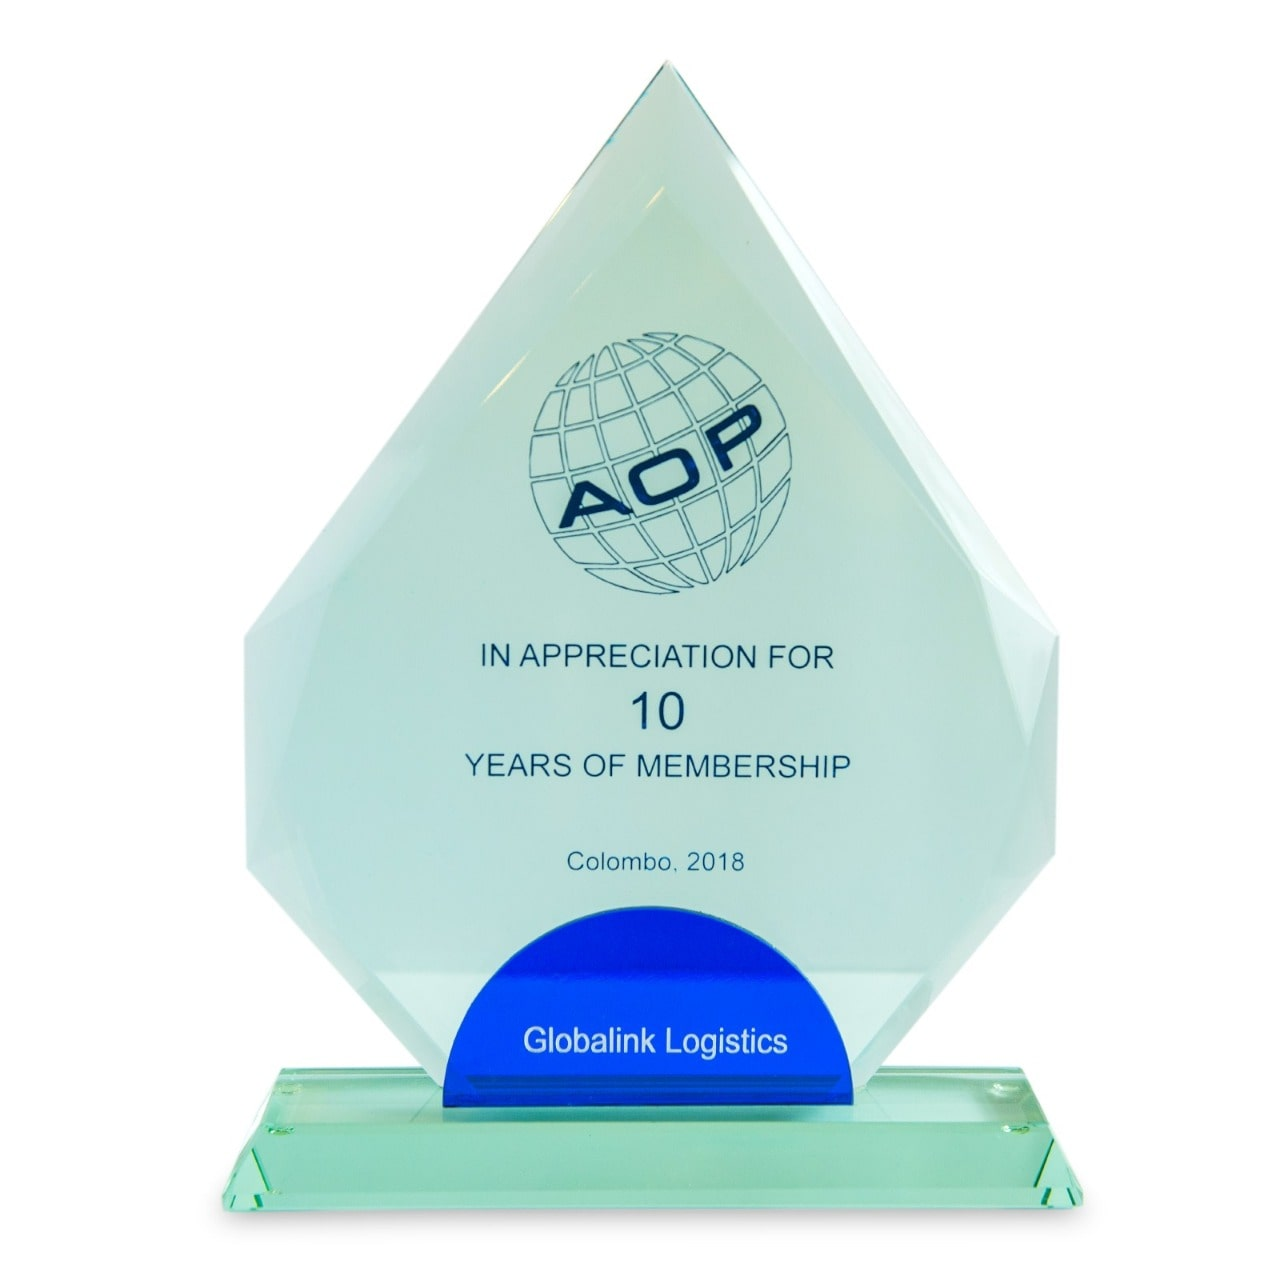 10 years of AOP membership